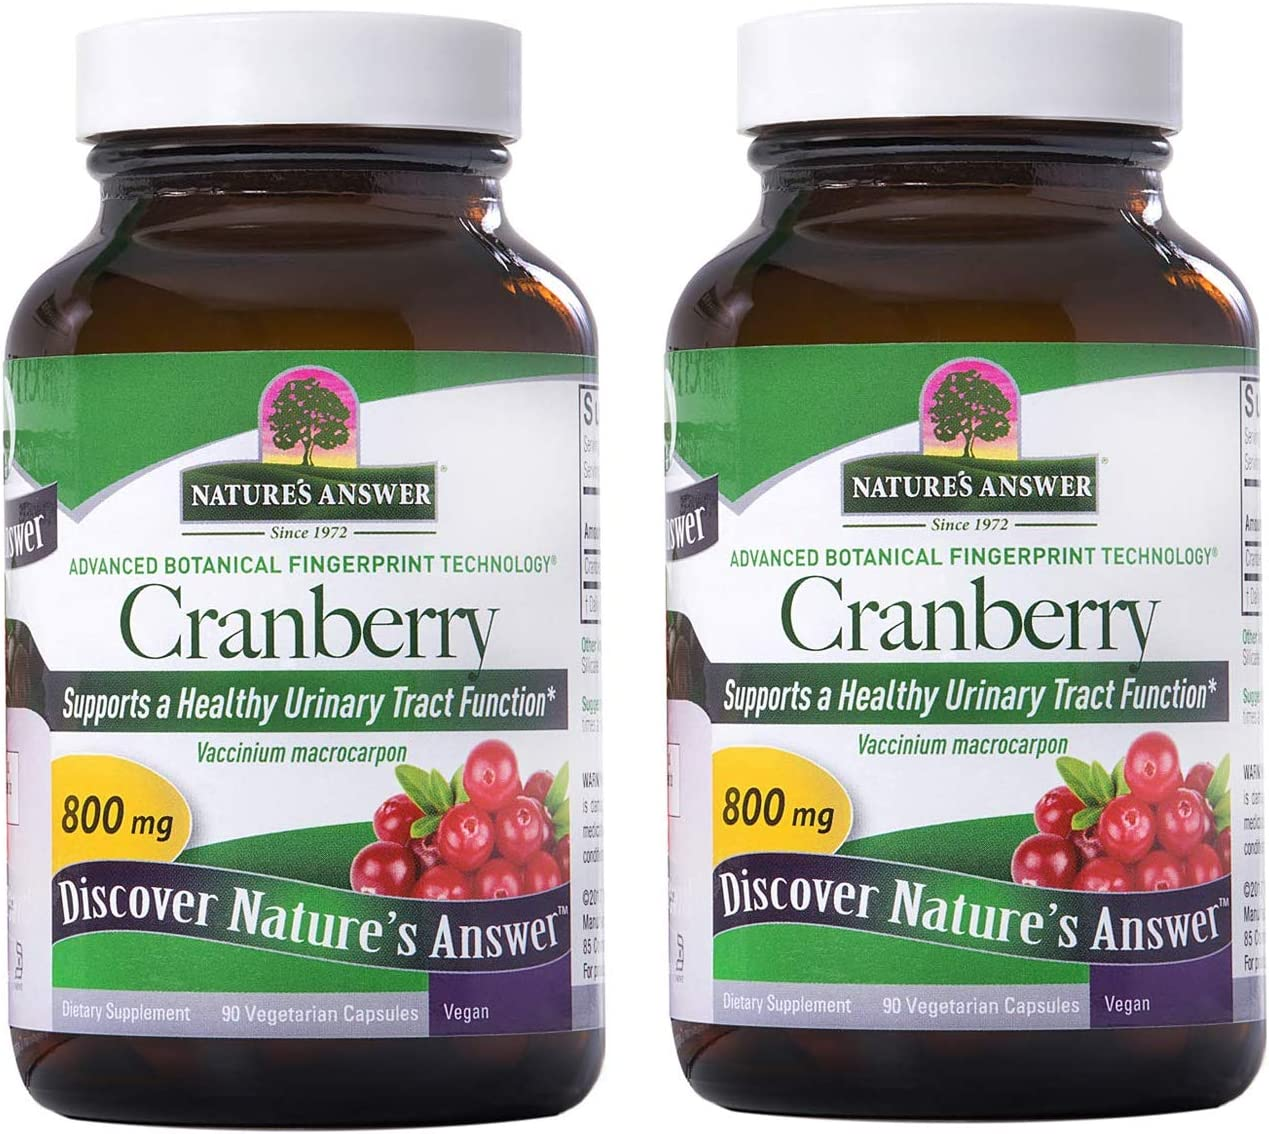 Nature's Answer Cranberry Fruit | Dietary Supplement | Supports a Healthy Urinary Tract Function & Healthy Immune System | Vegetarian, Kosher Certified & Vegan 90 Capsules (2 pack)